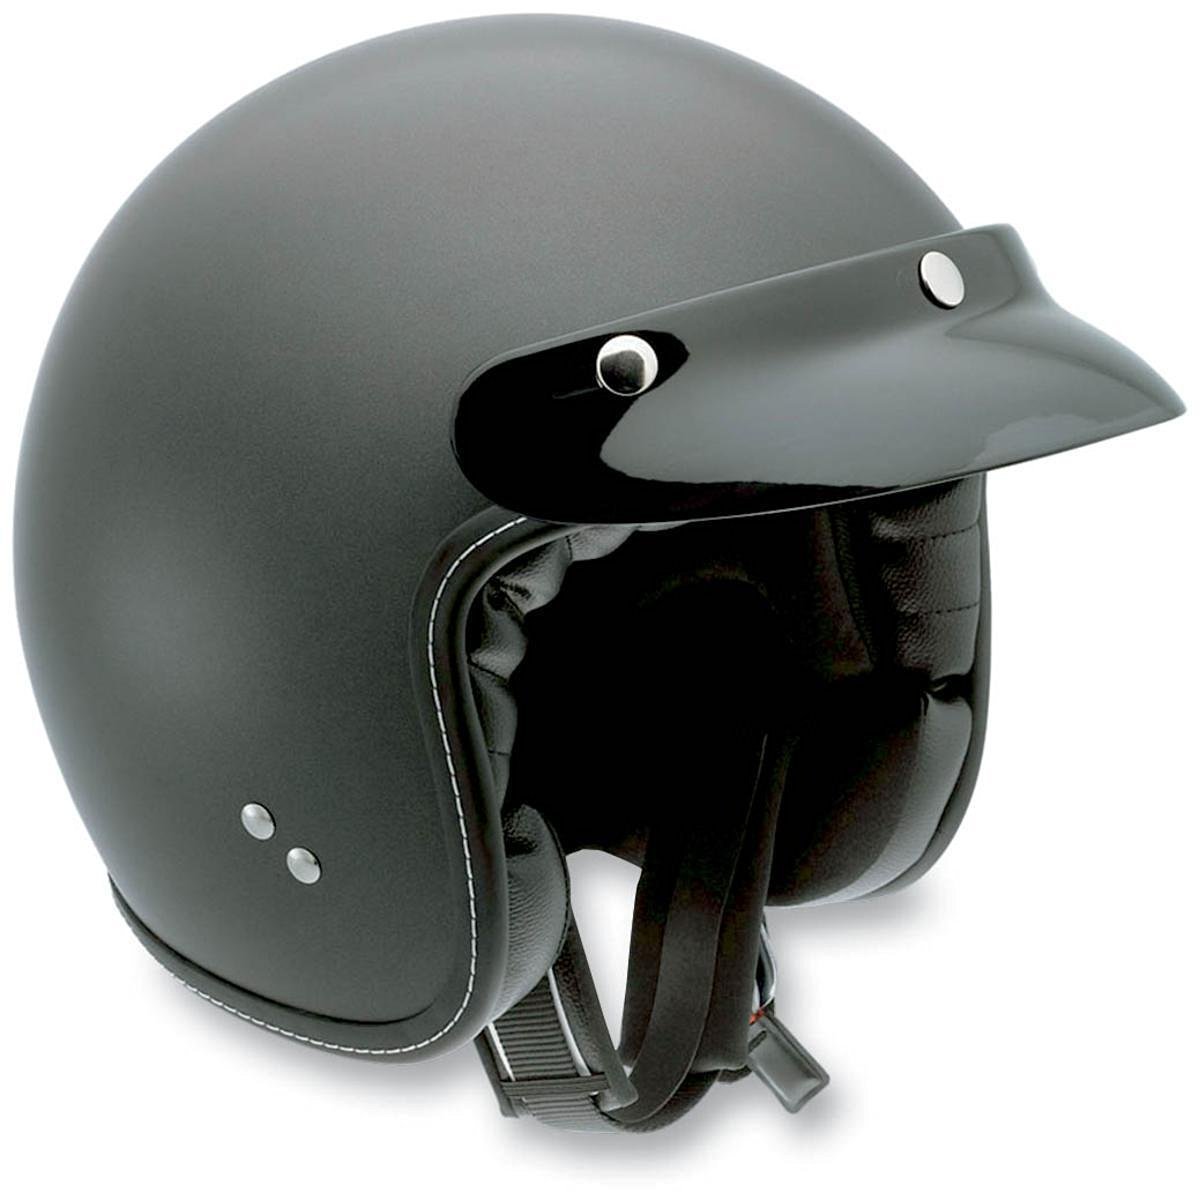 62c600f6 Cheap Agv Helmet Visor, find Agv Helmet Visor deals on line at ...